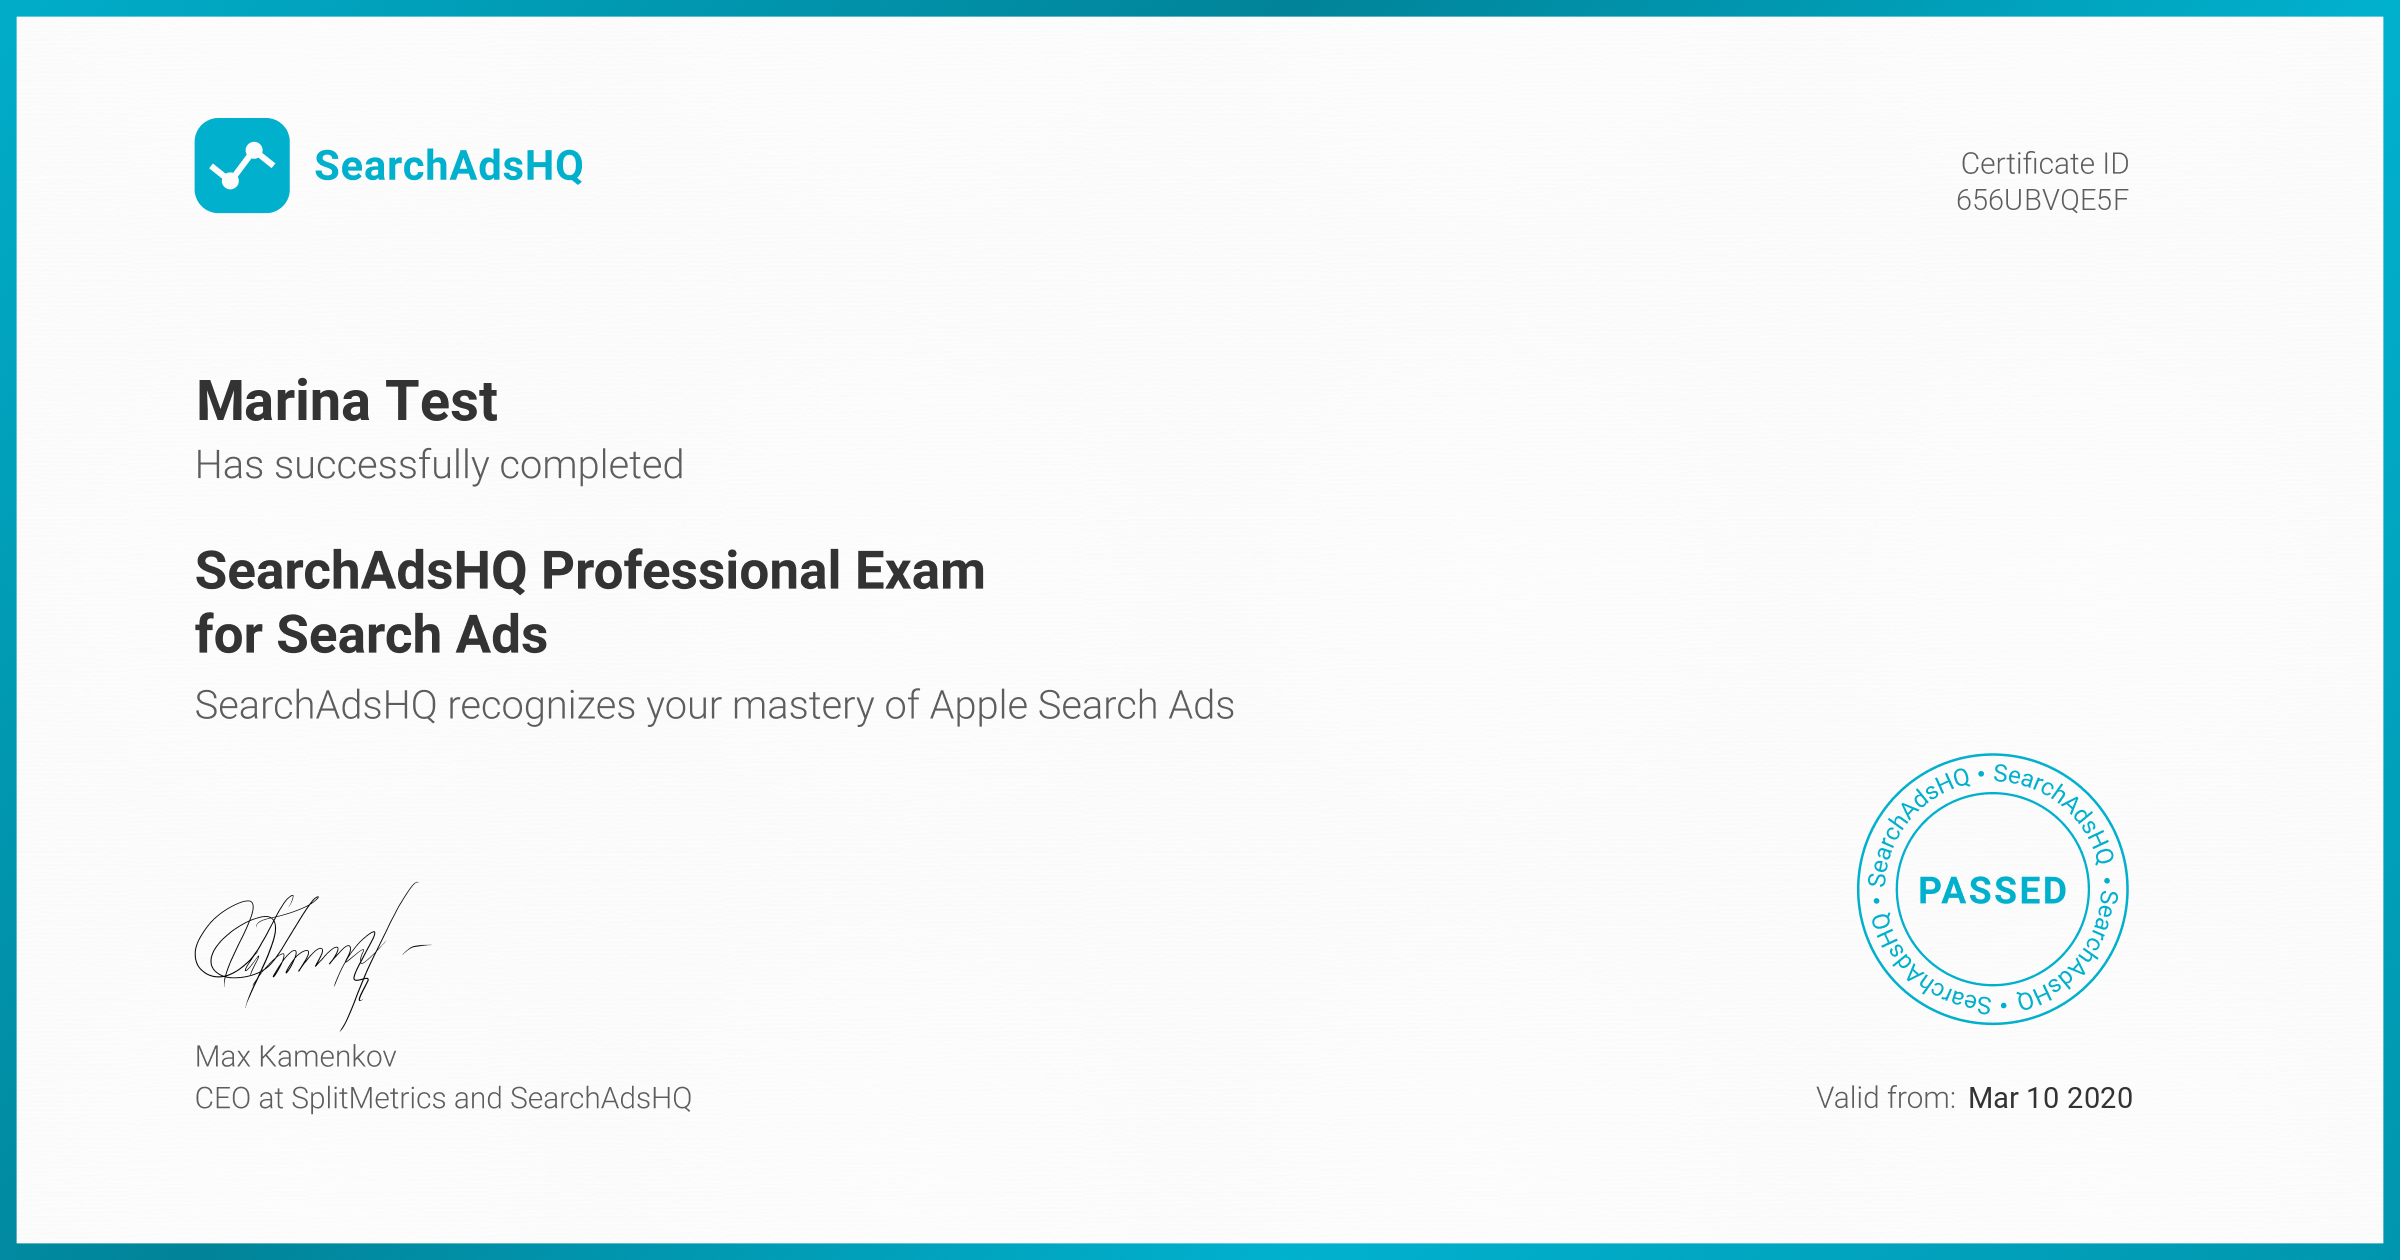 Certificate for Marina Test | SearchAdsHQ Professional Exam for Search Ads